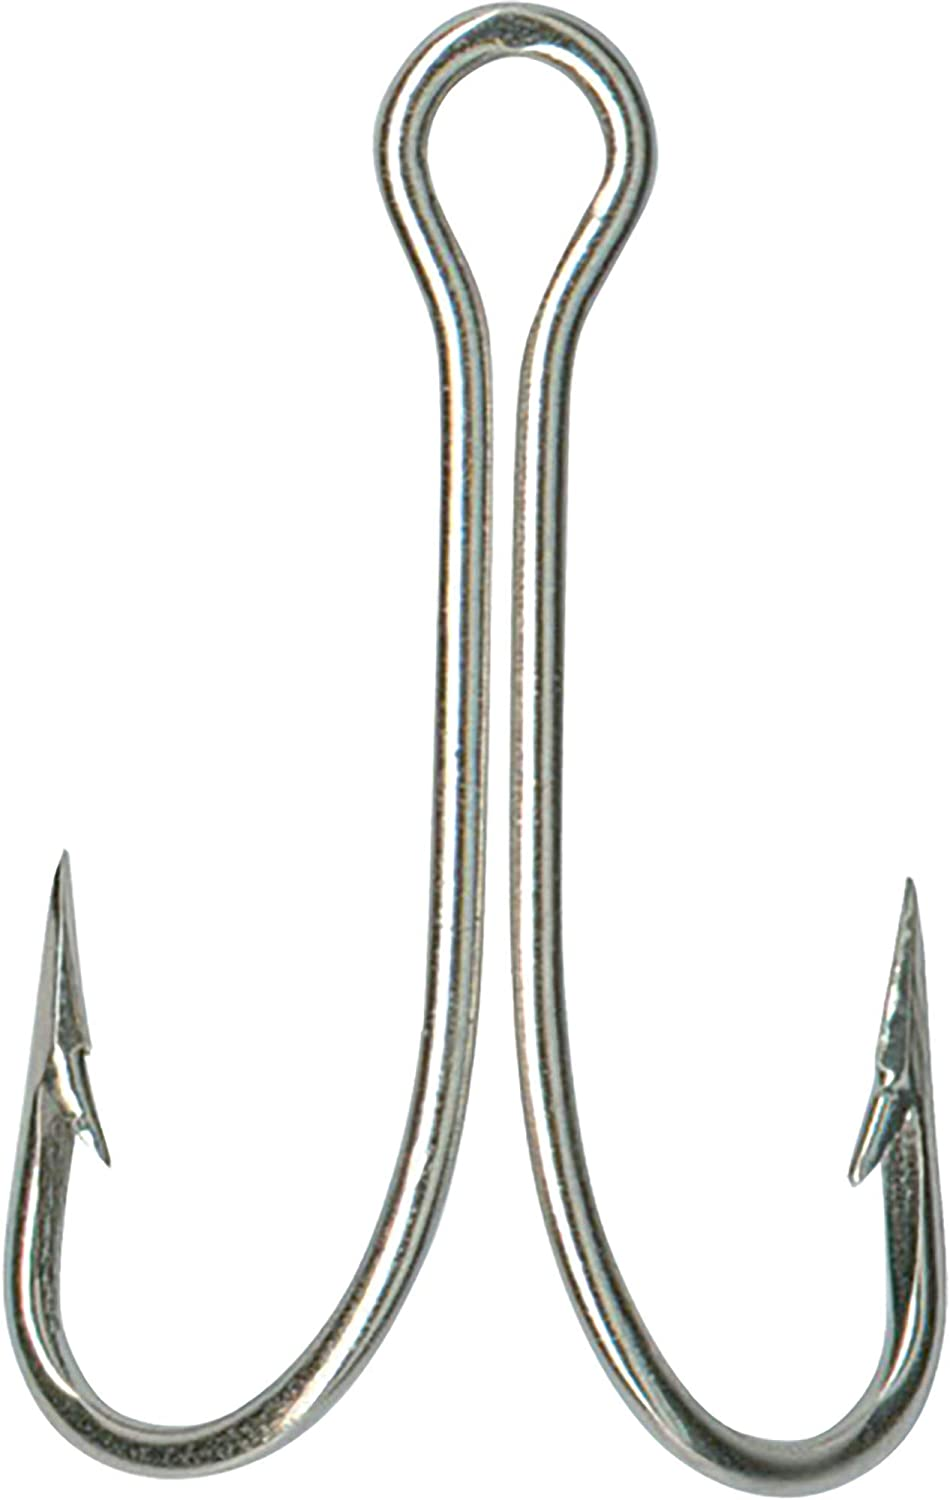 Mustad Classic Double Fishing Hook With Open Shank